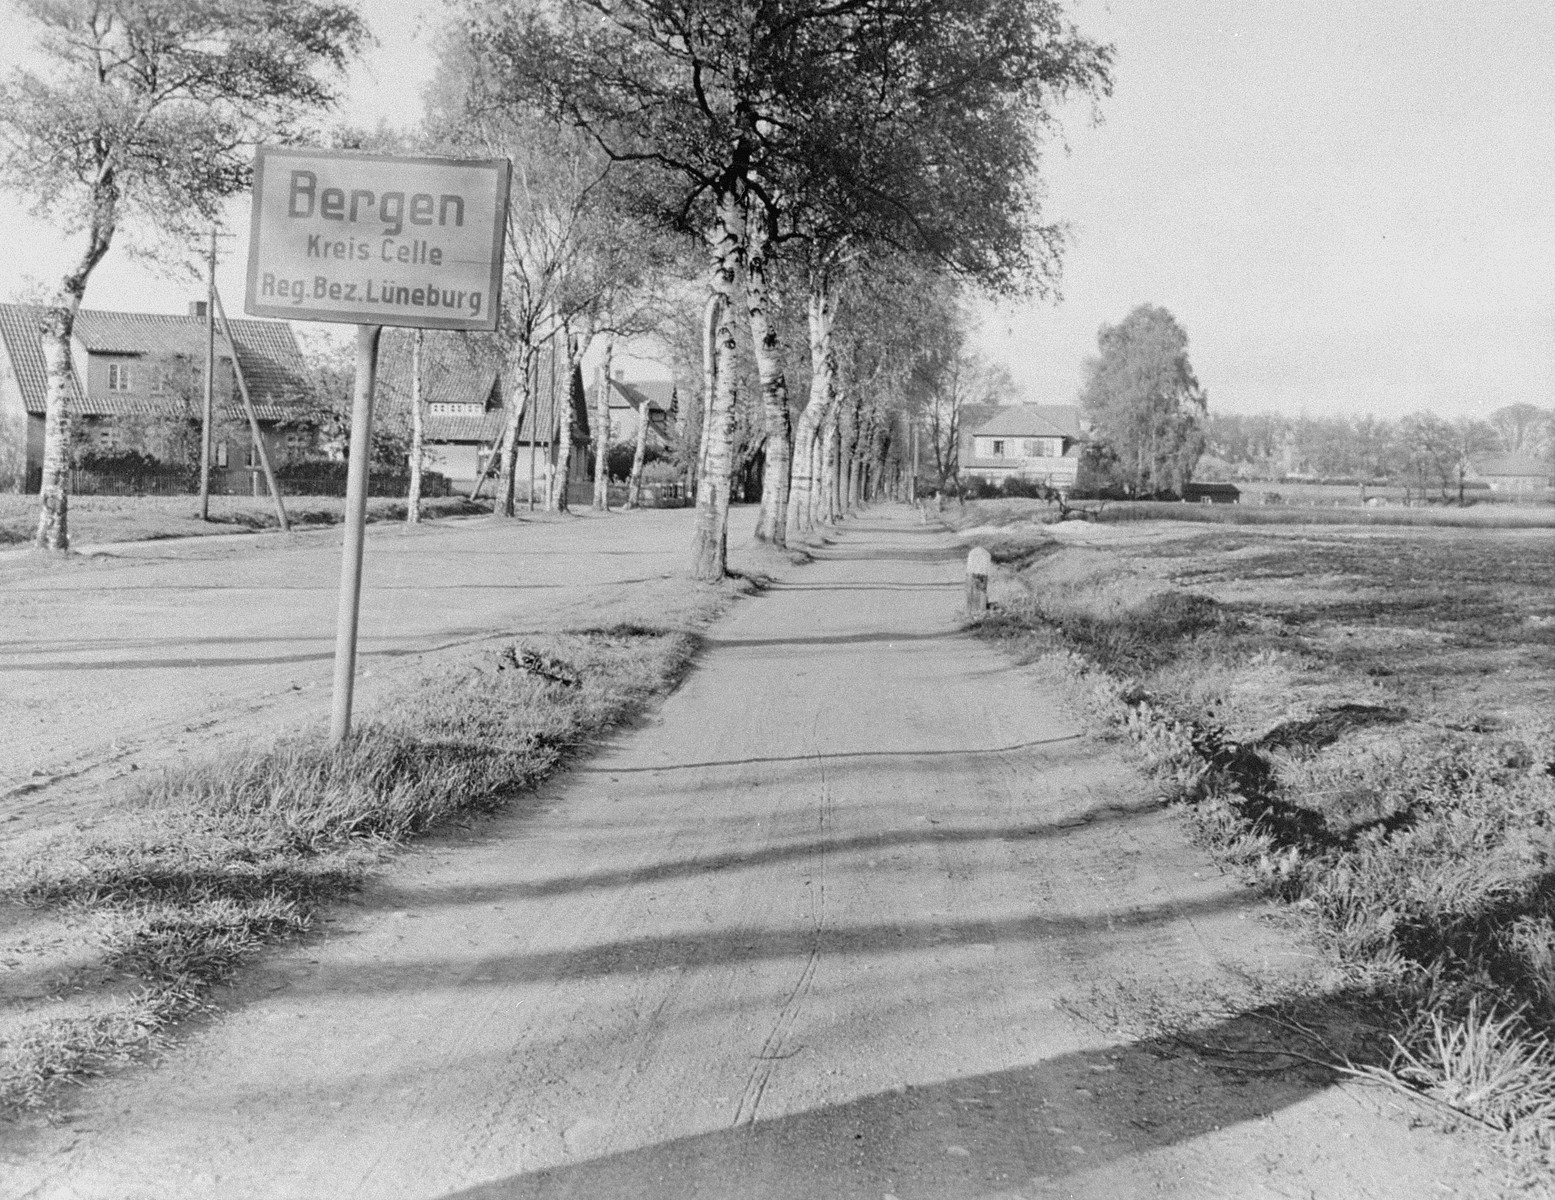 A road sign at the entrance to the village of Bergen, Germany, which lies only a few miles from the Bergen-Belsen concentration camp.